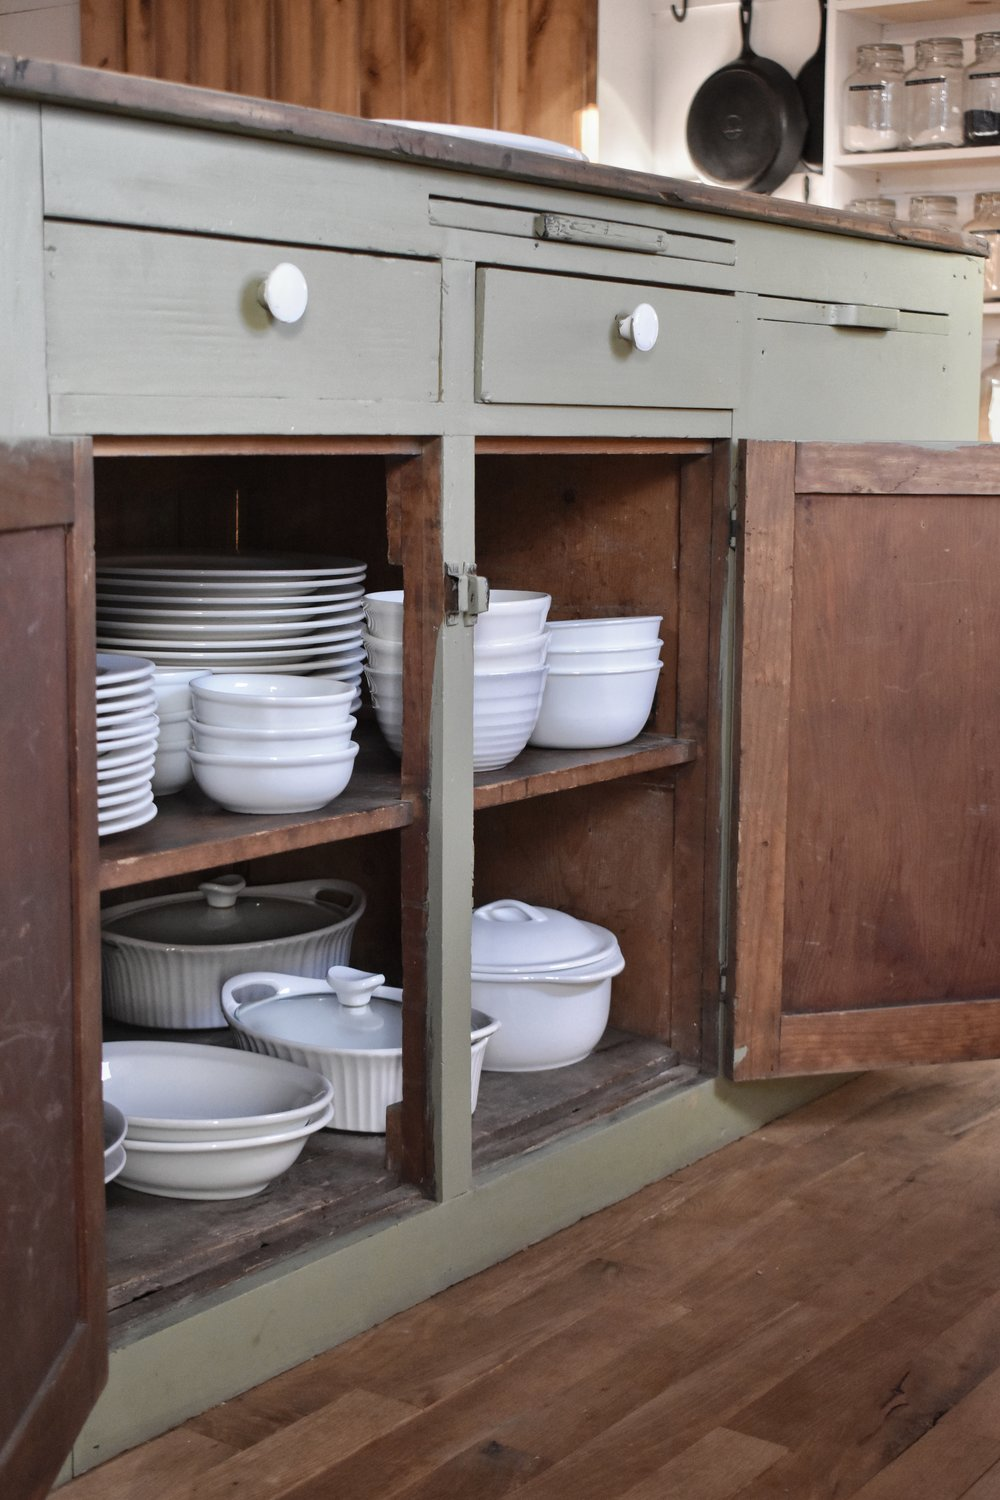 Small farmhouse style kitchen cabinet organization. Simple, easy, diy, tips and ideas for cutting the kitchen clutter and staying organized.